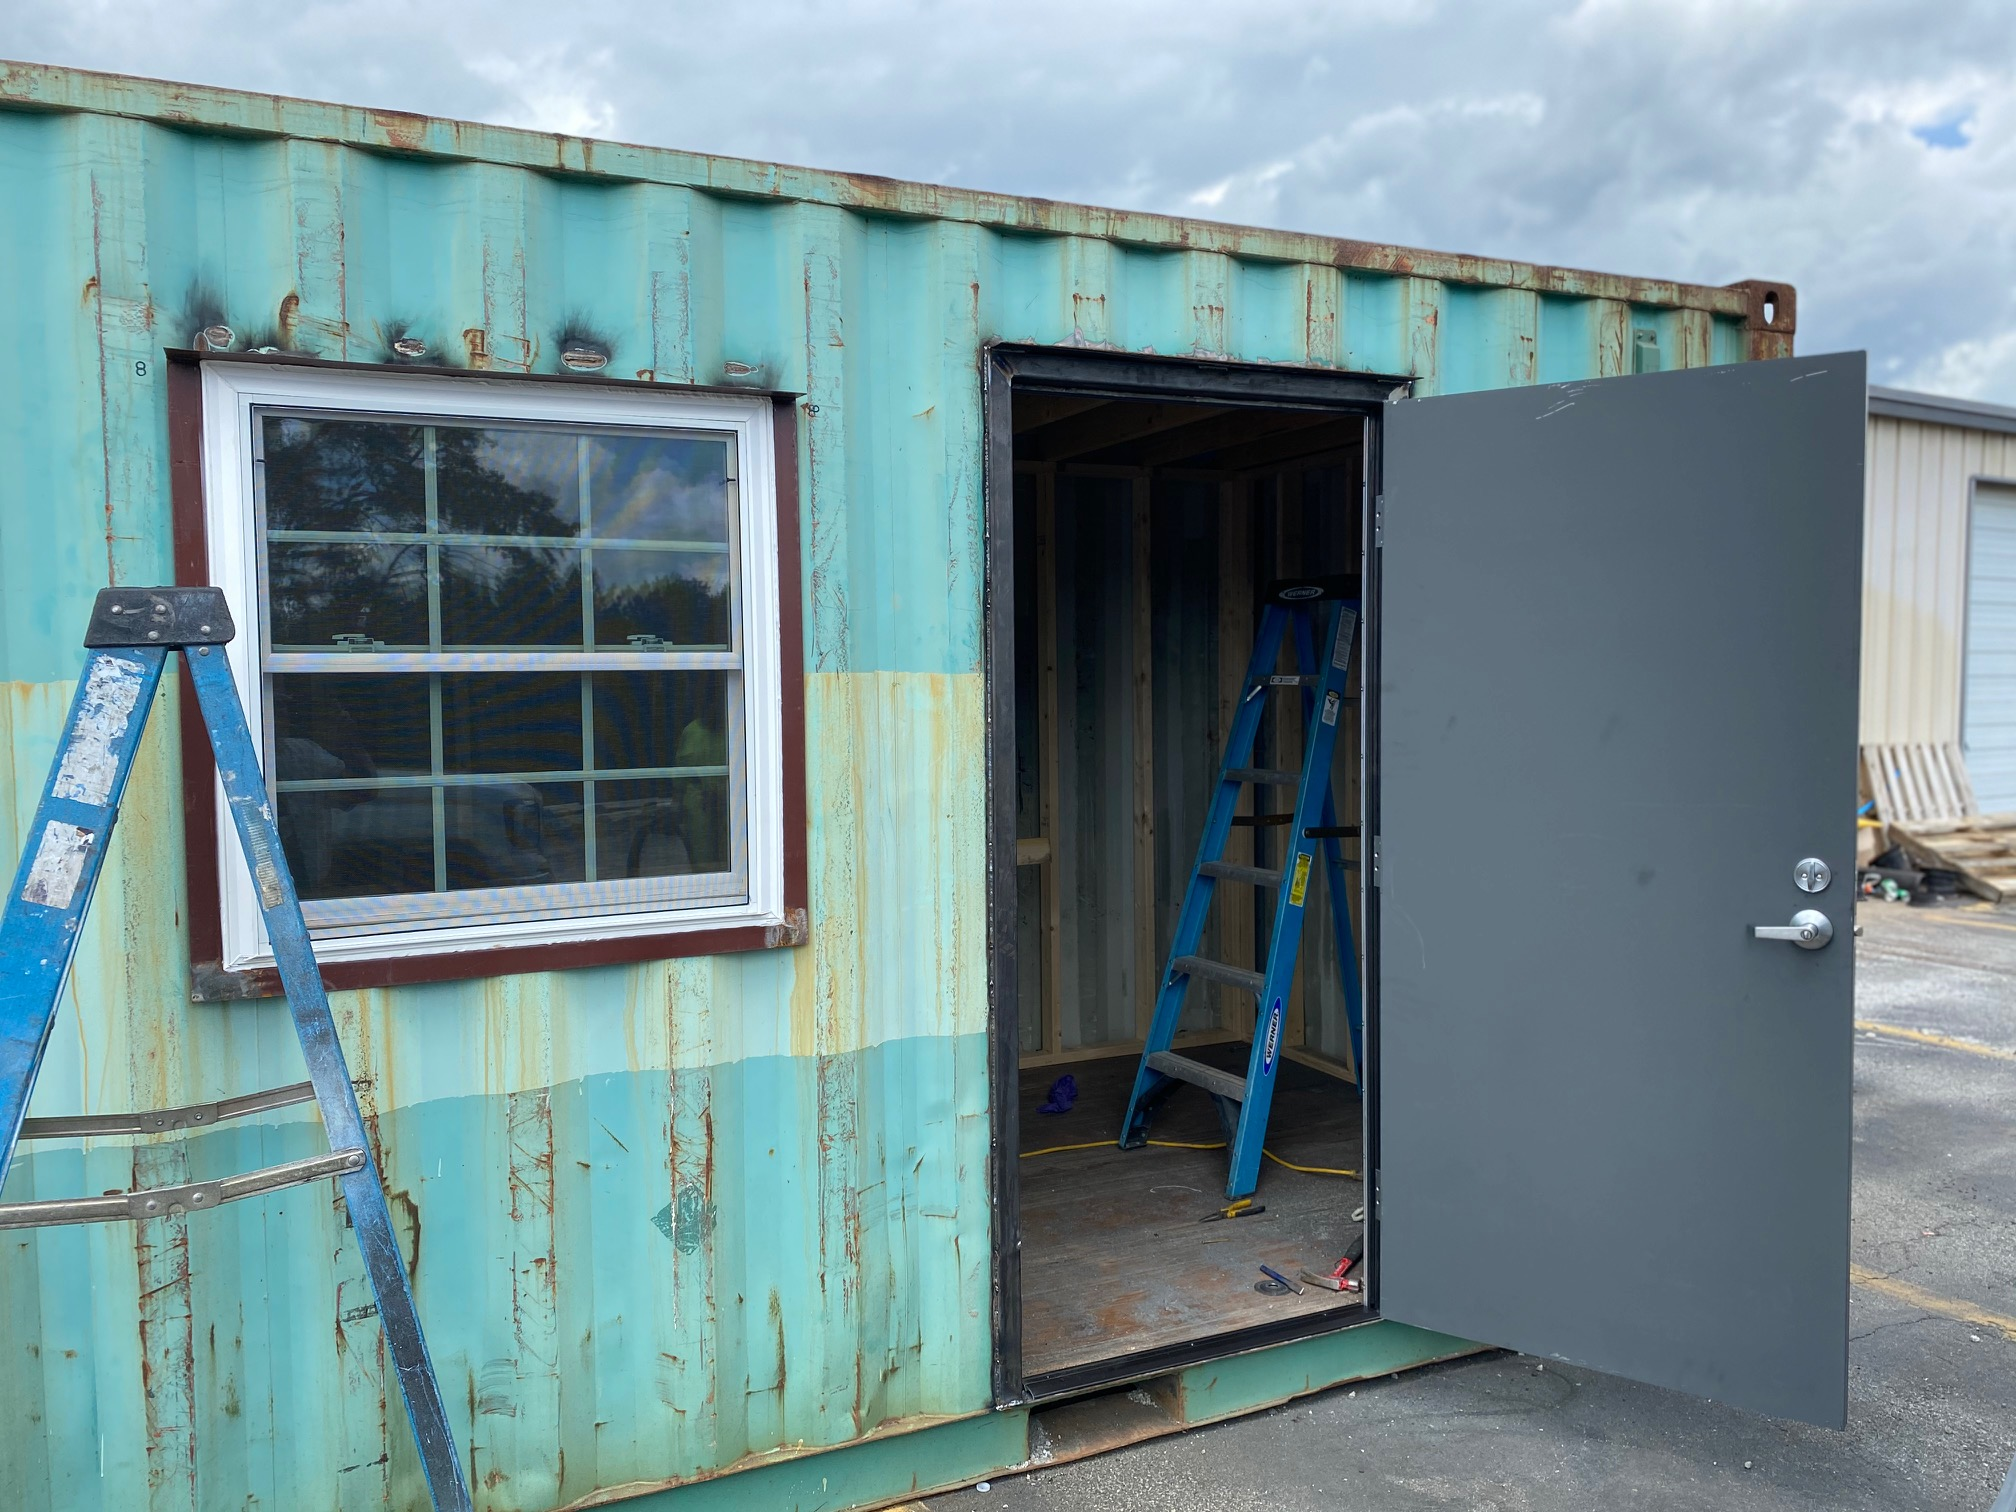 Teal storage container under construction